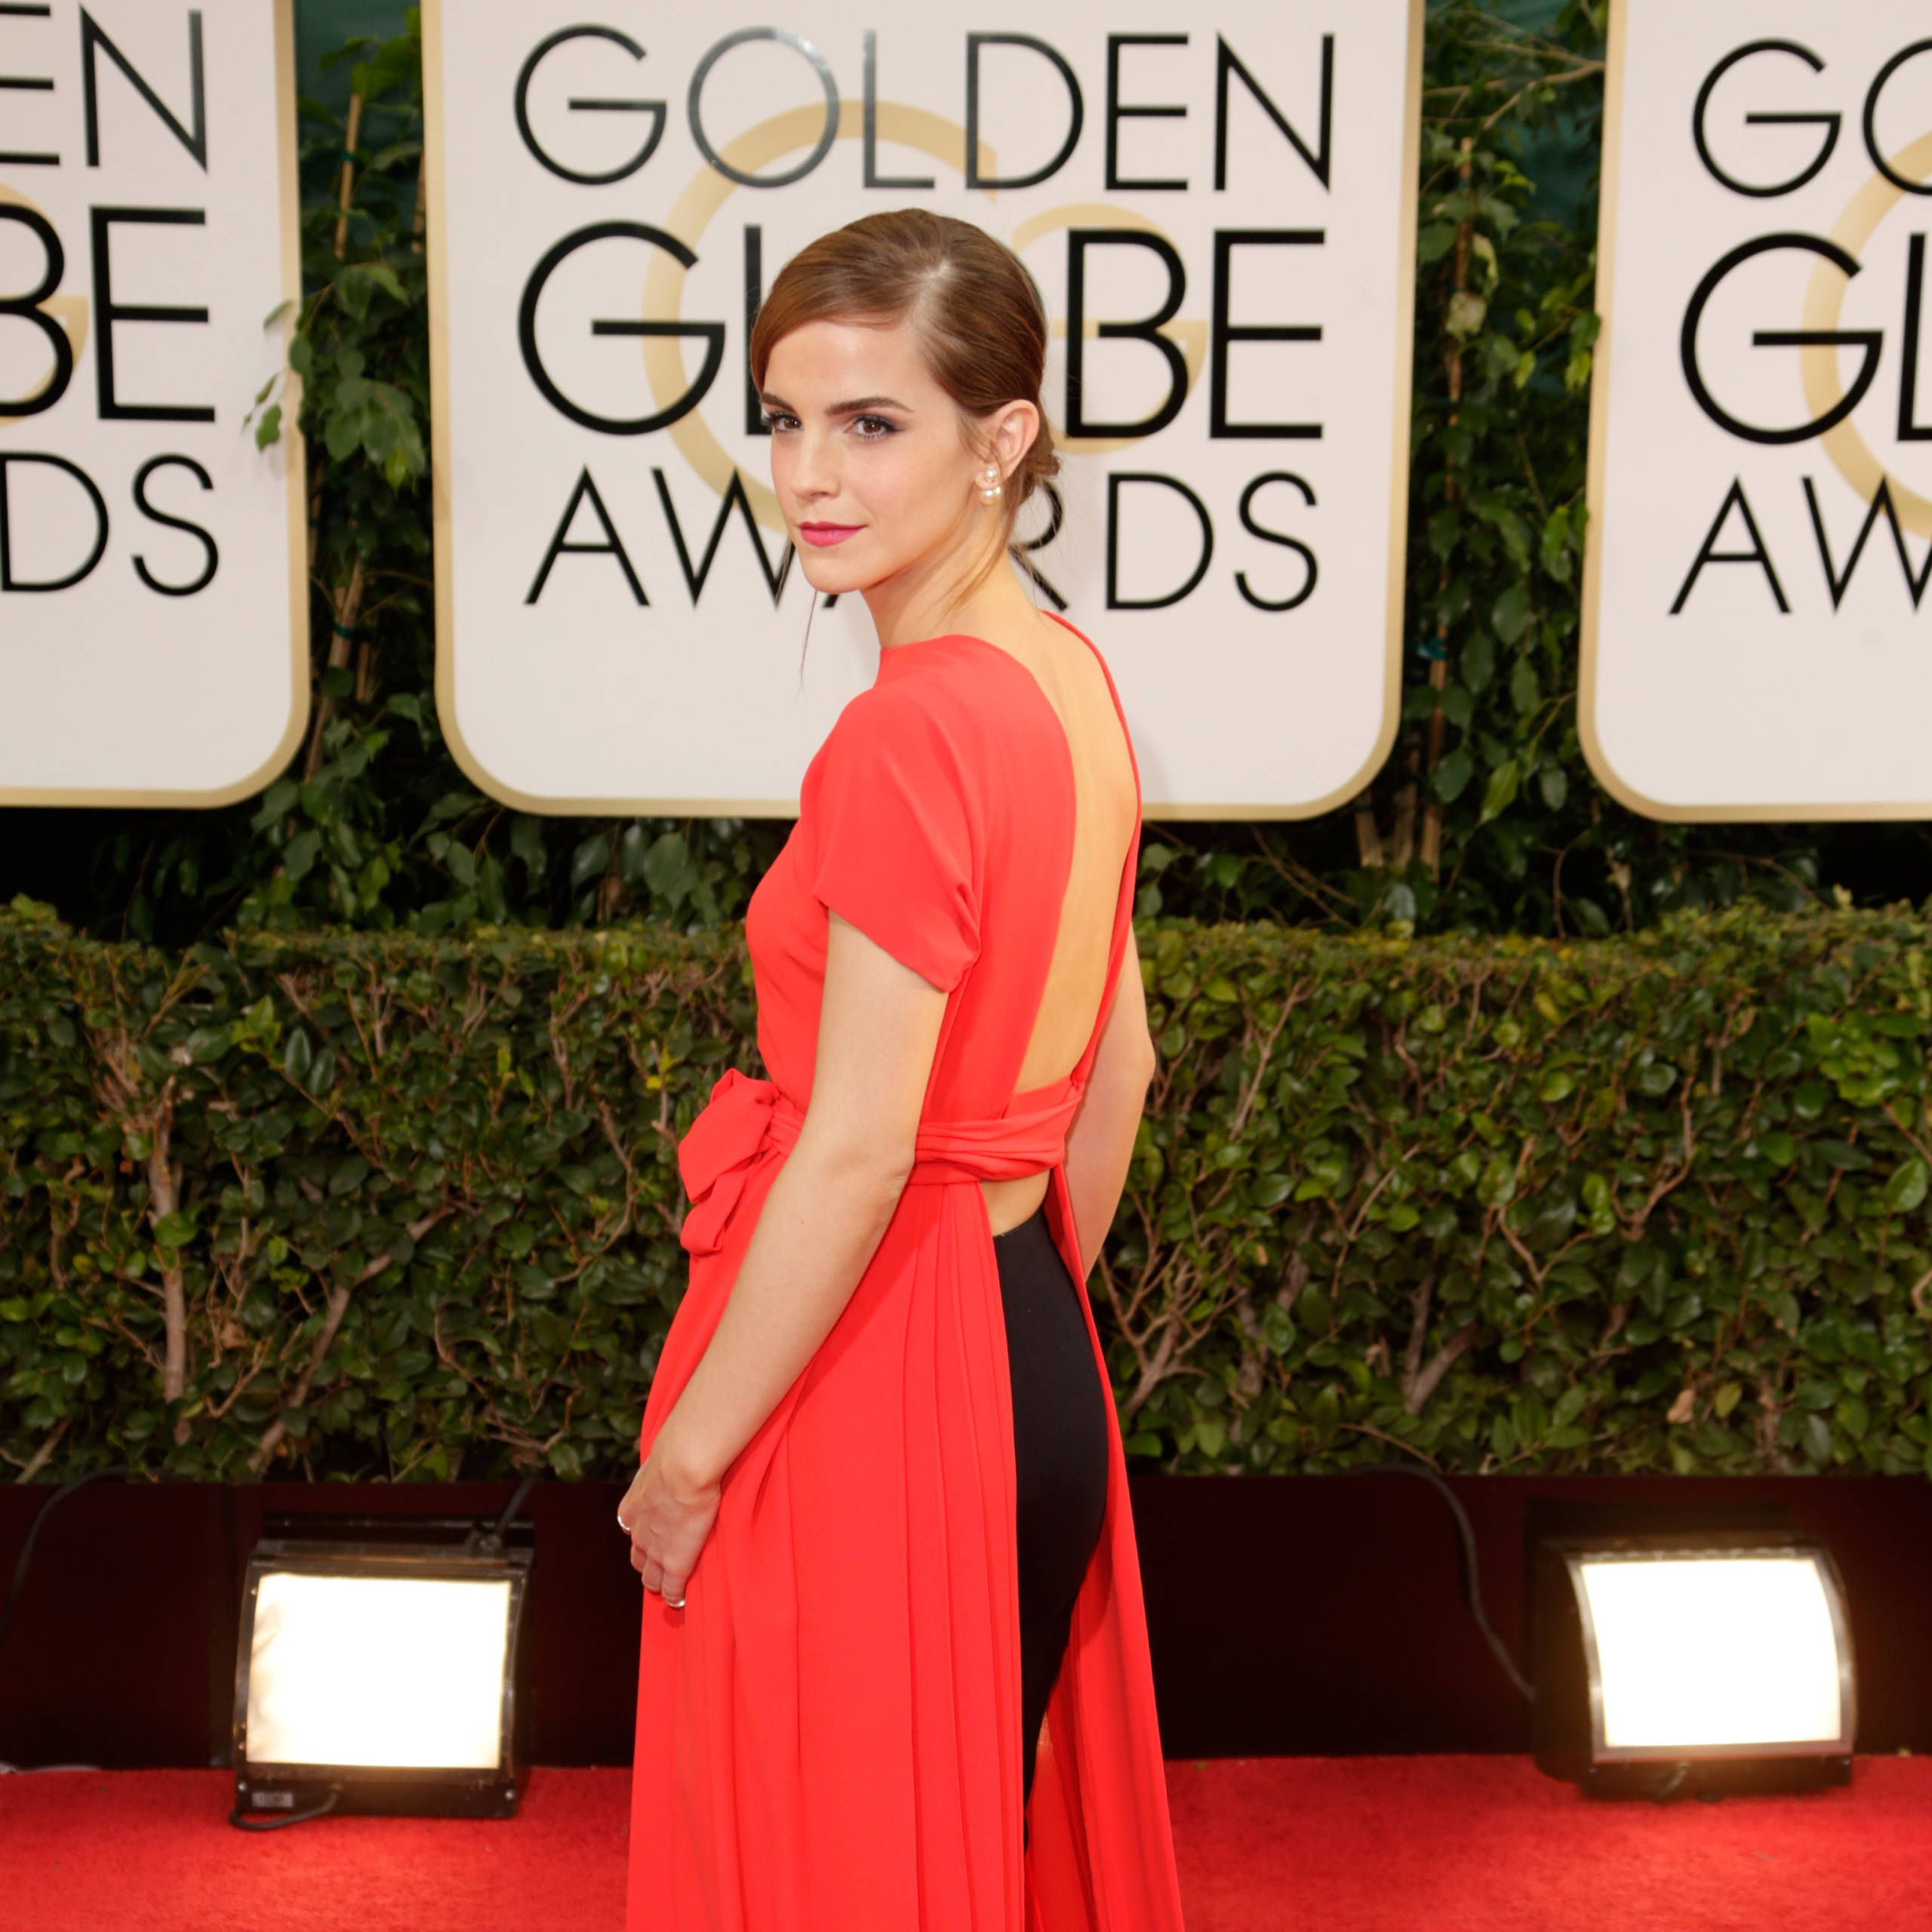 Emma Watson's best red carpet looks: we take a look at the UN Ambassador's fashion hits and misses